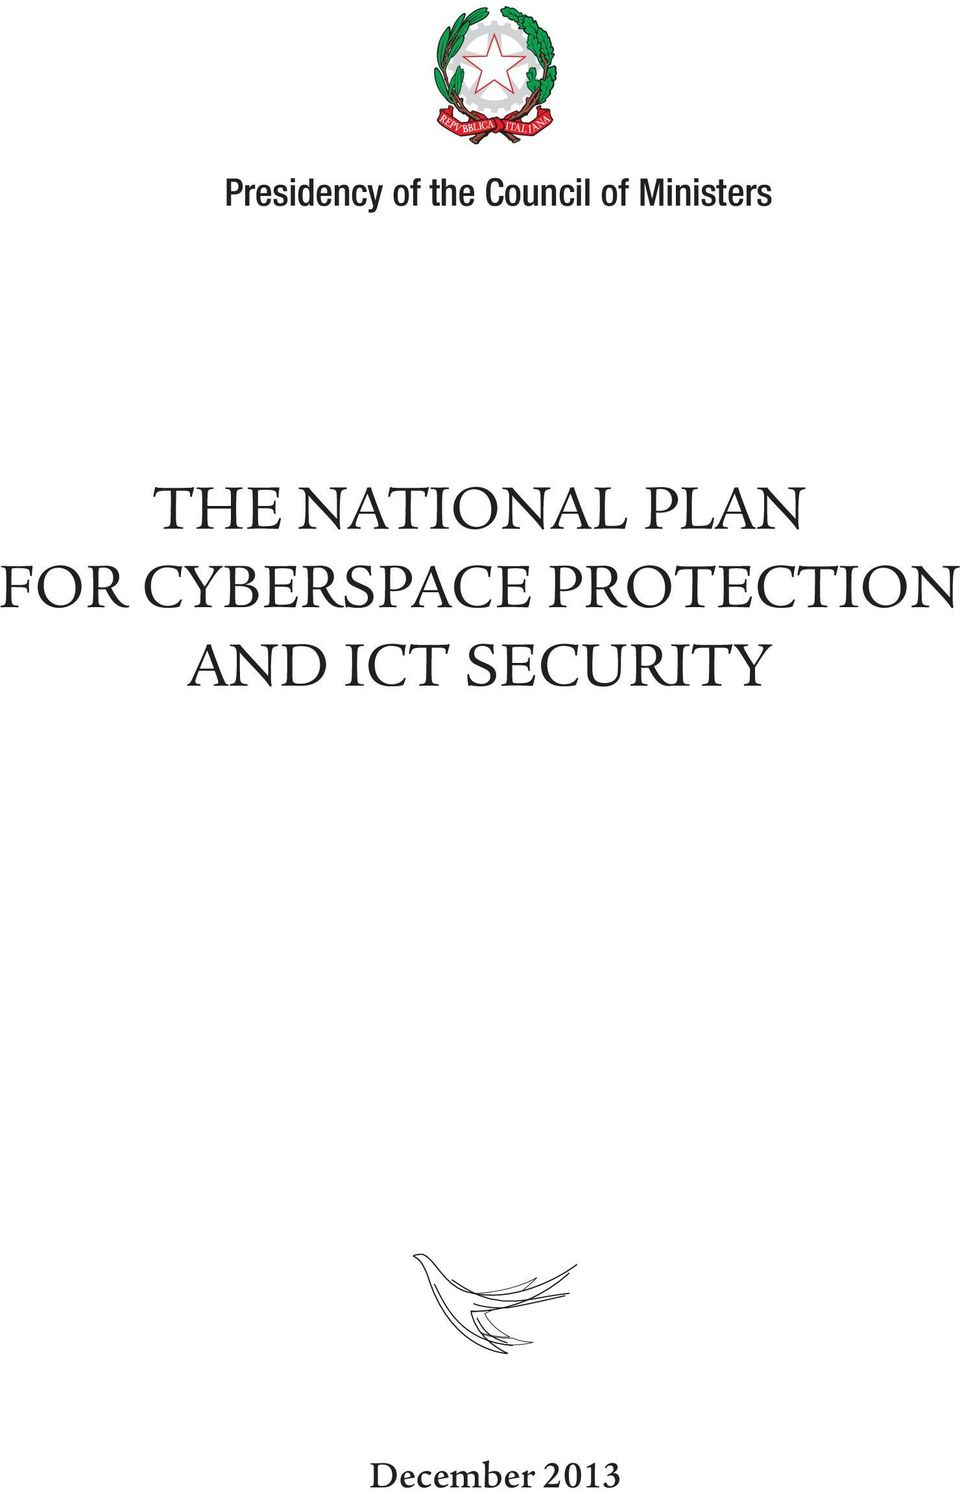 FOR CYBERSPACE PROTECTION